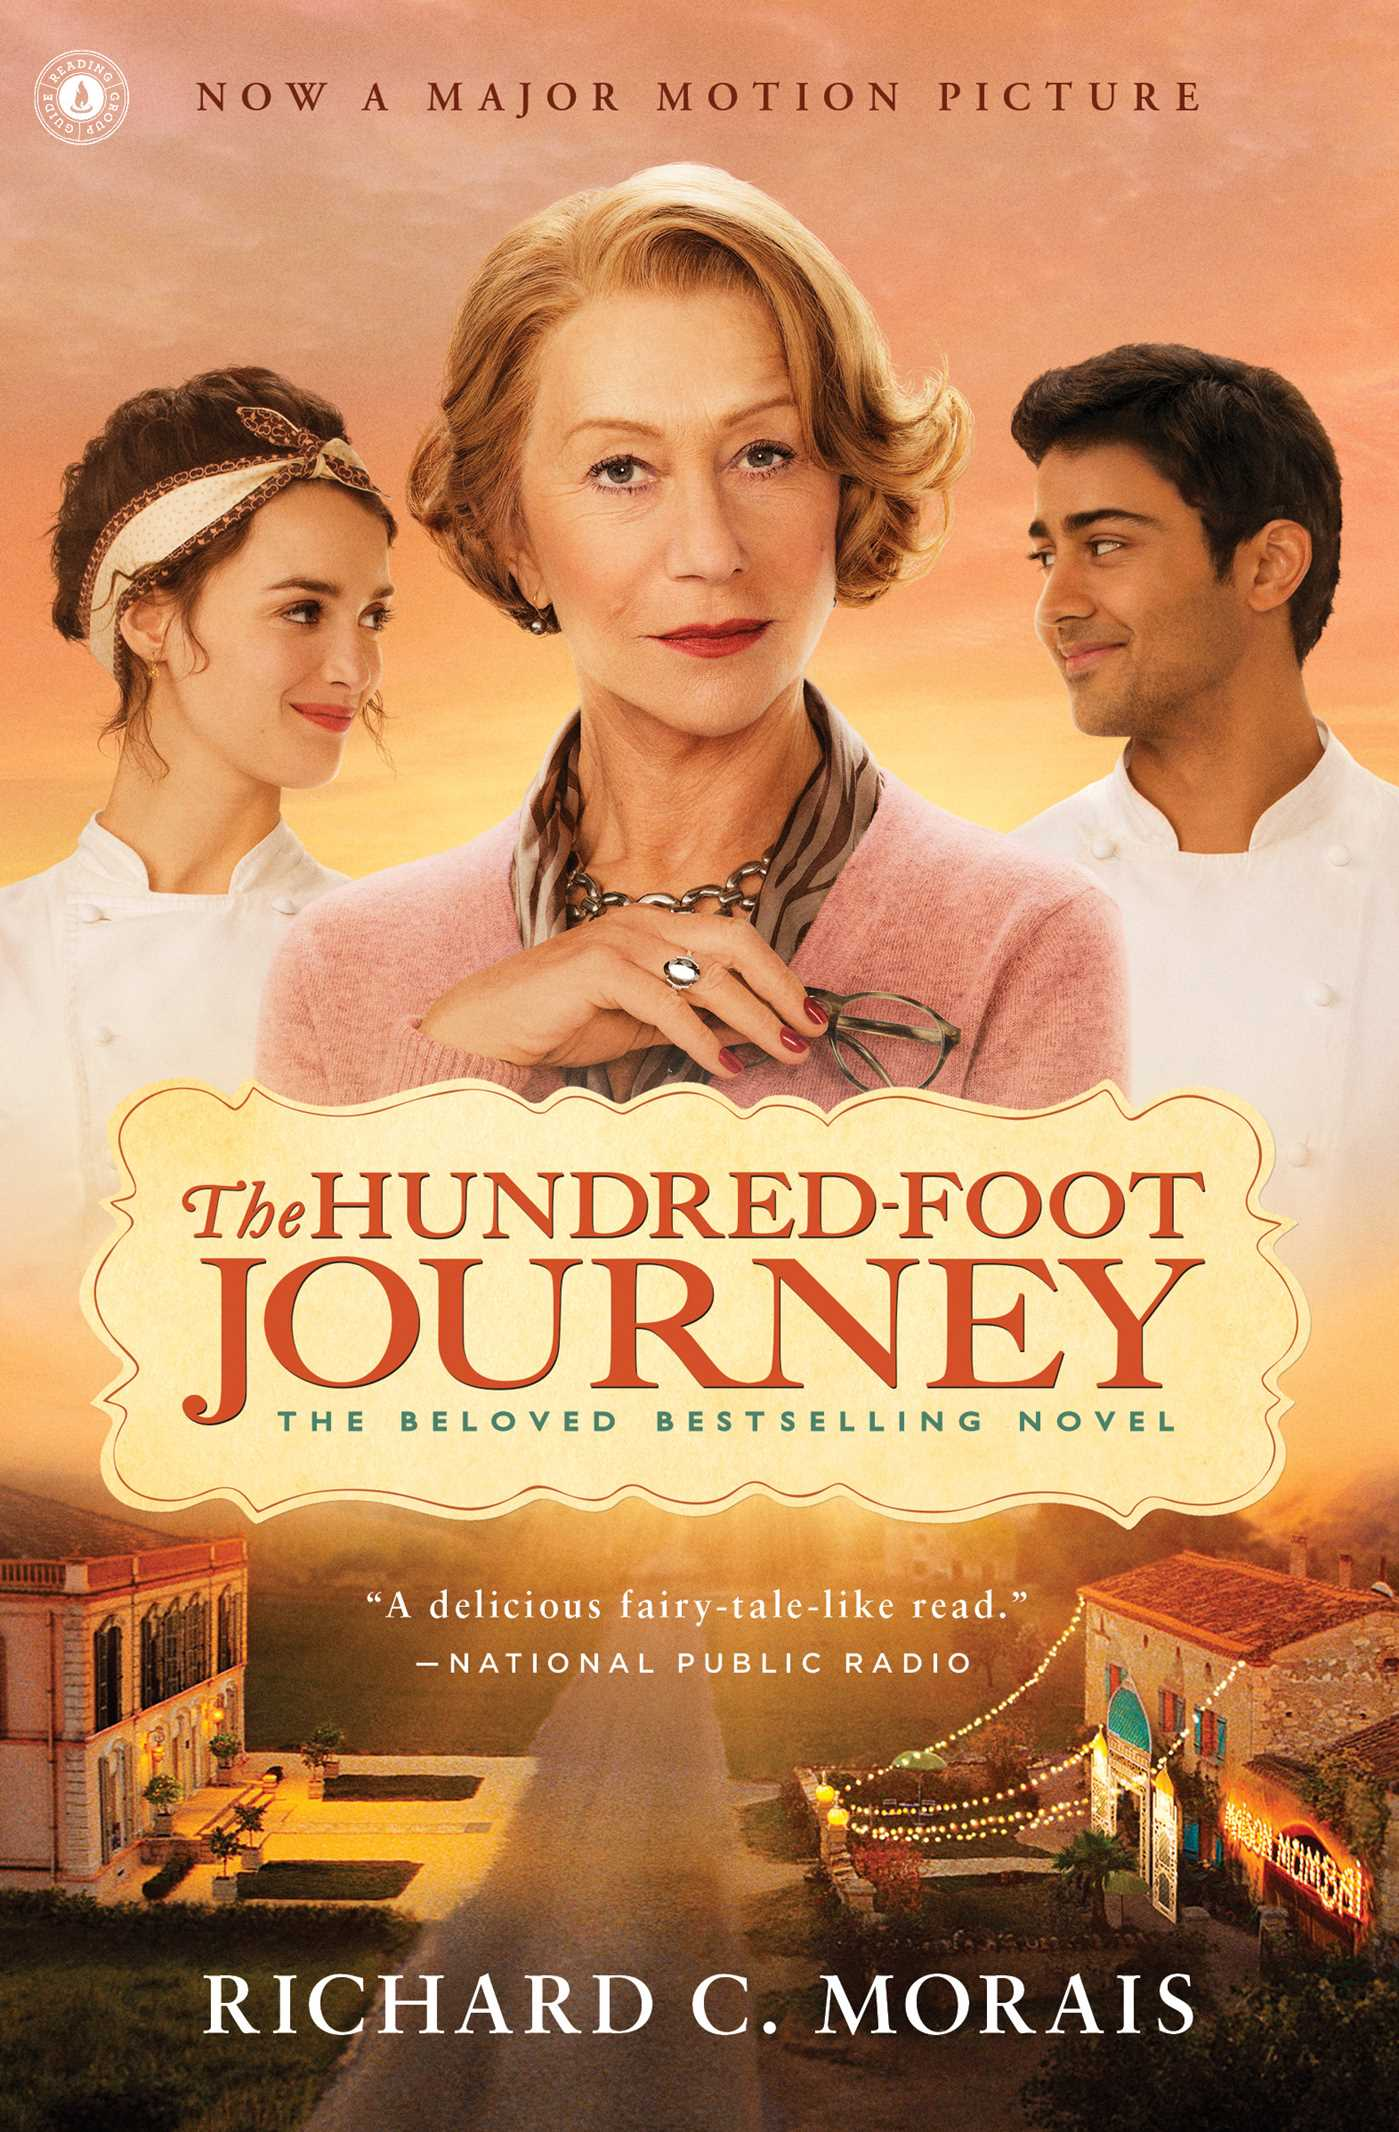 Hundred-foot-journey-9781439165669_hr